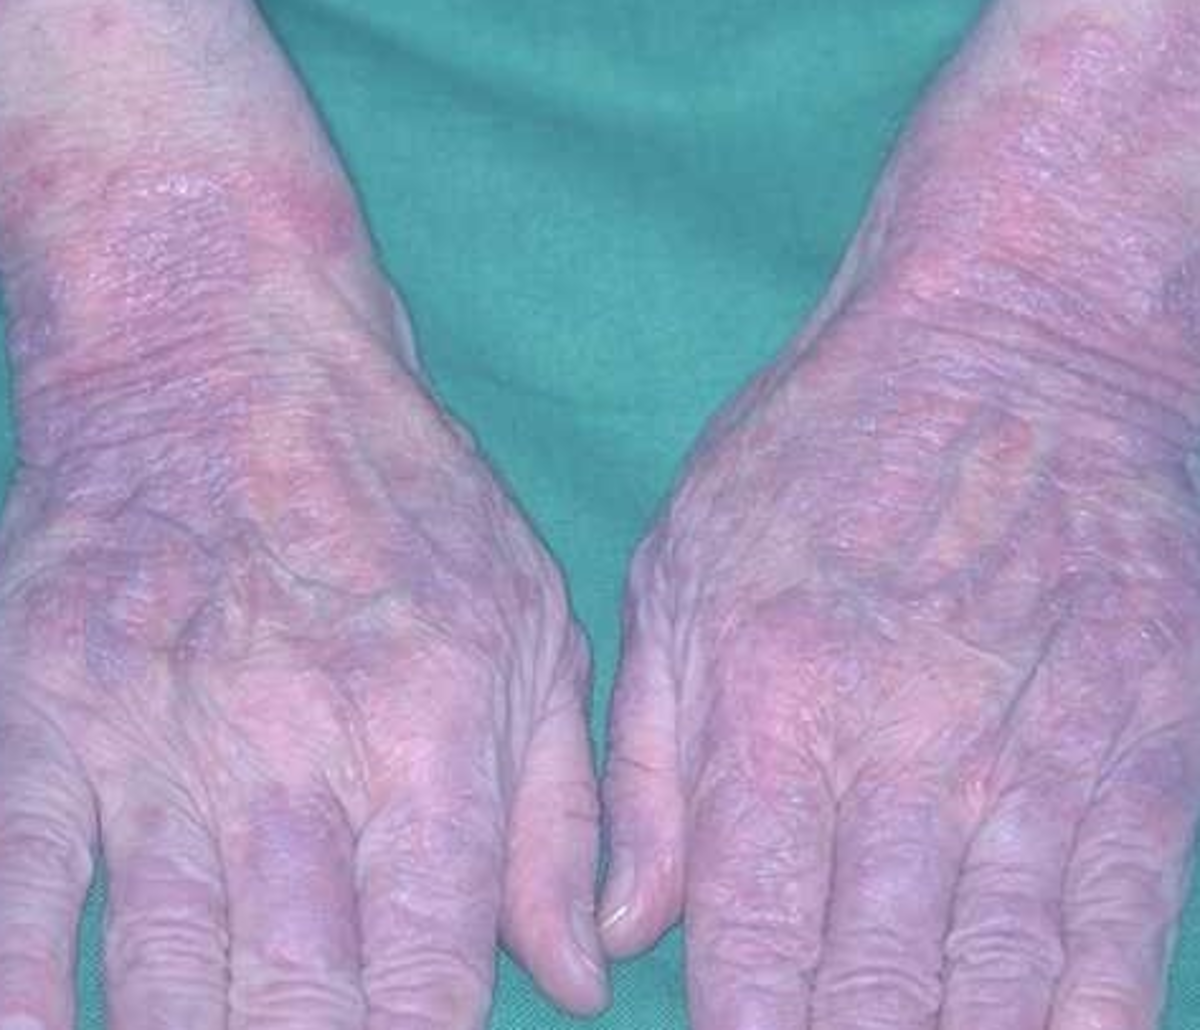 Lupus Rash – Pictures, Life Expectancy, Contagious, Symptoms, Treatment